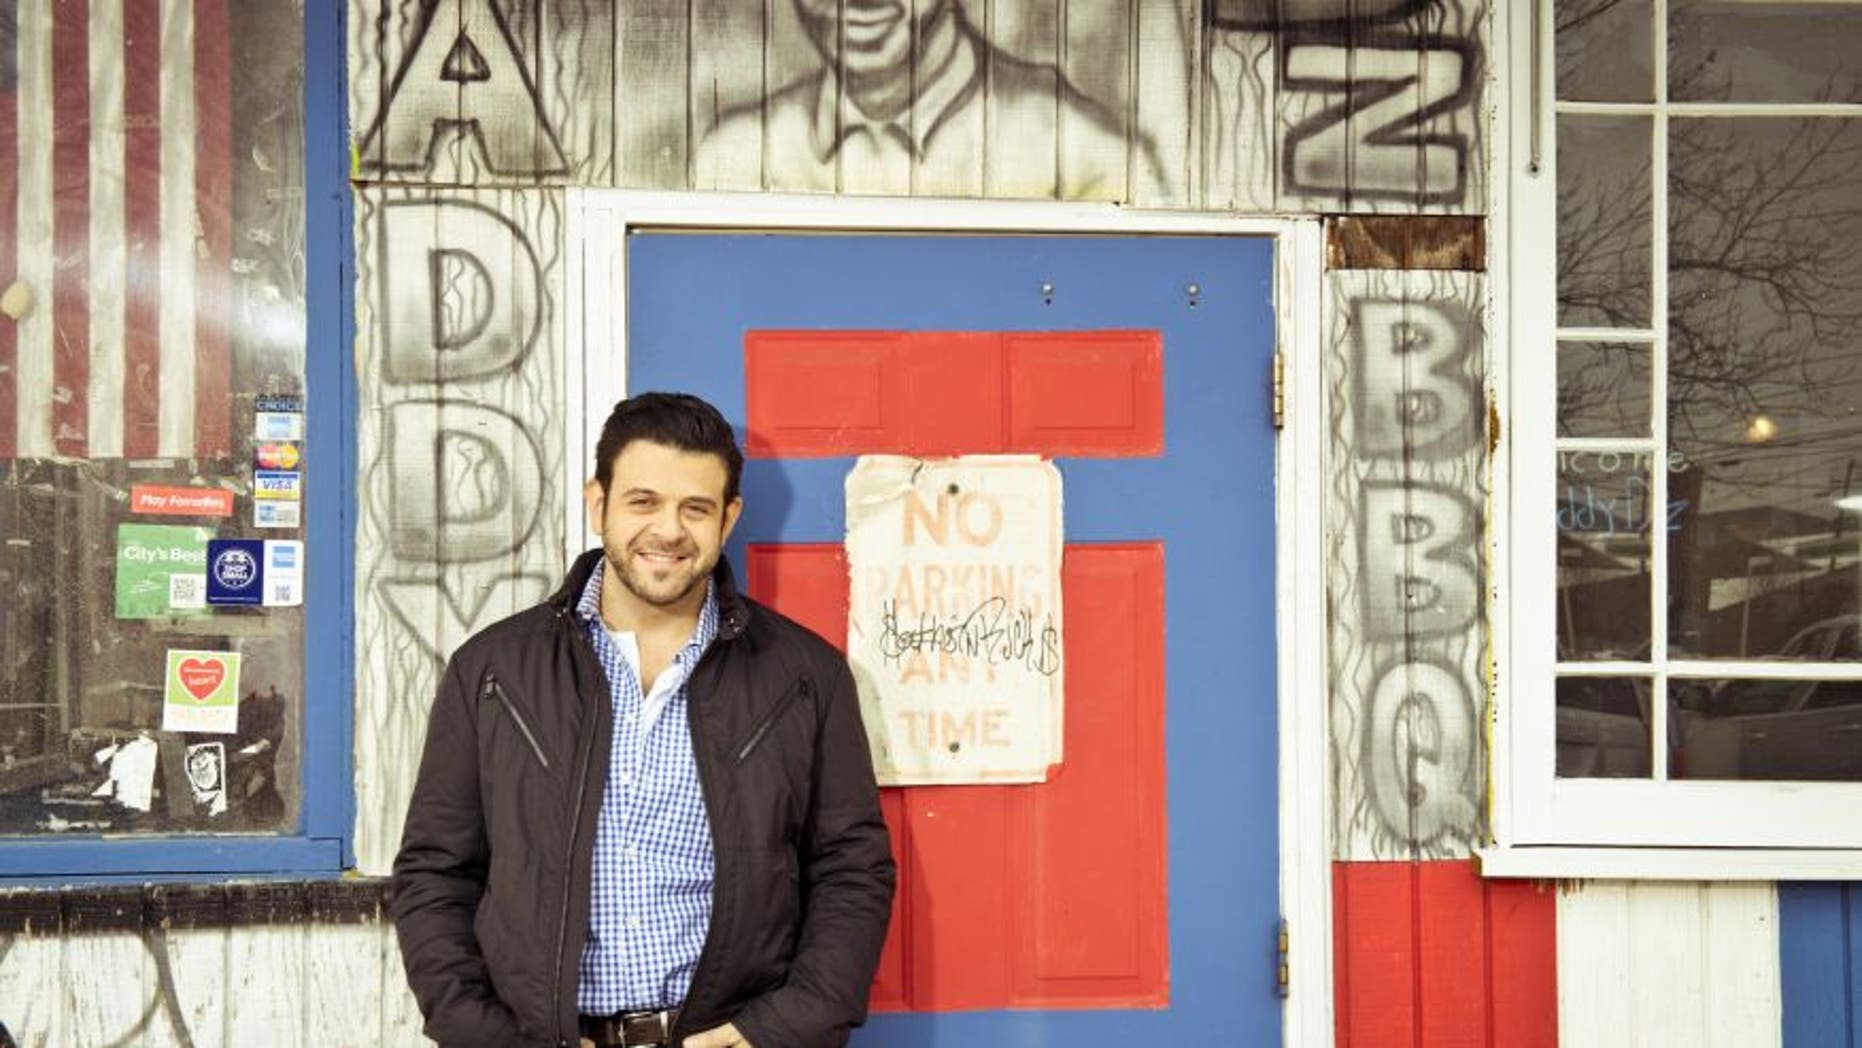 Adam Richman has taken to Twitter once again to set the record straight about his diet.